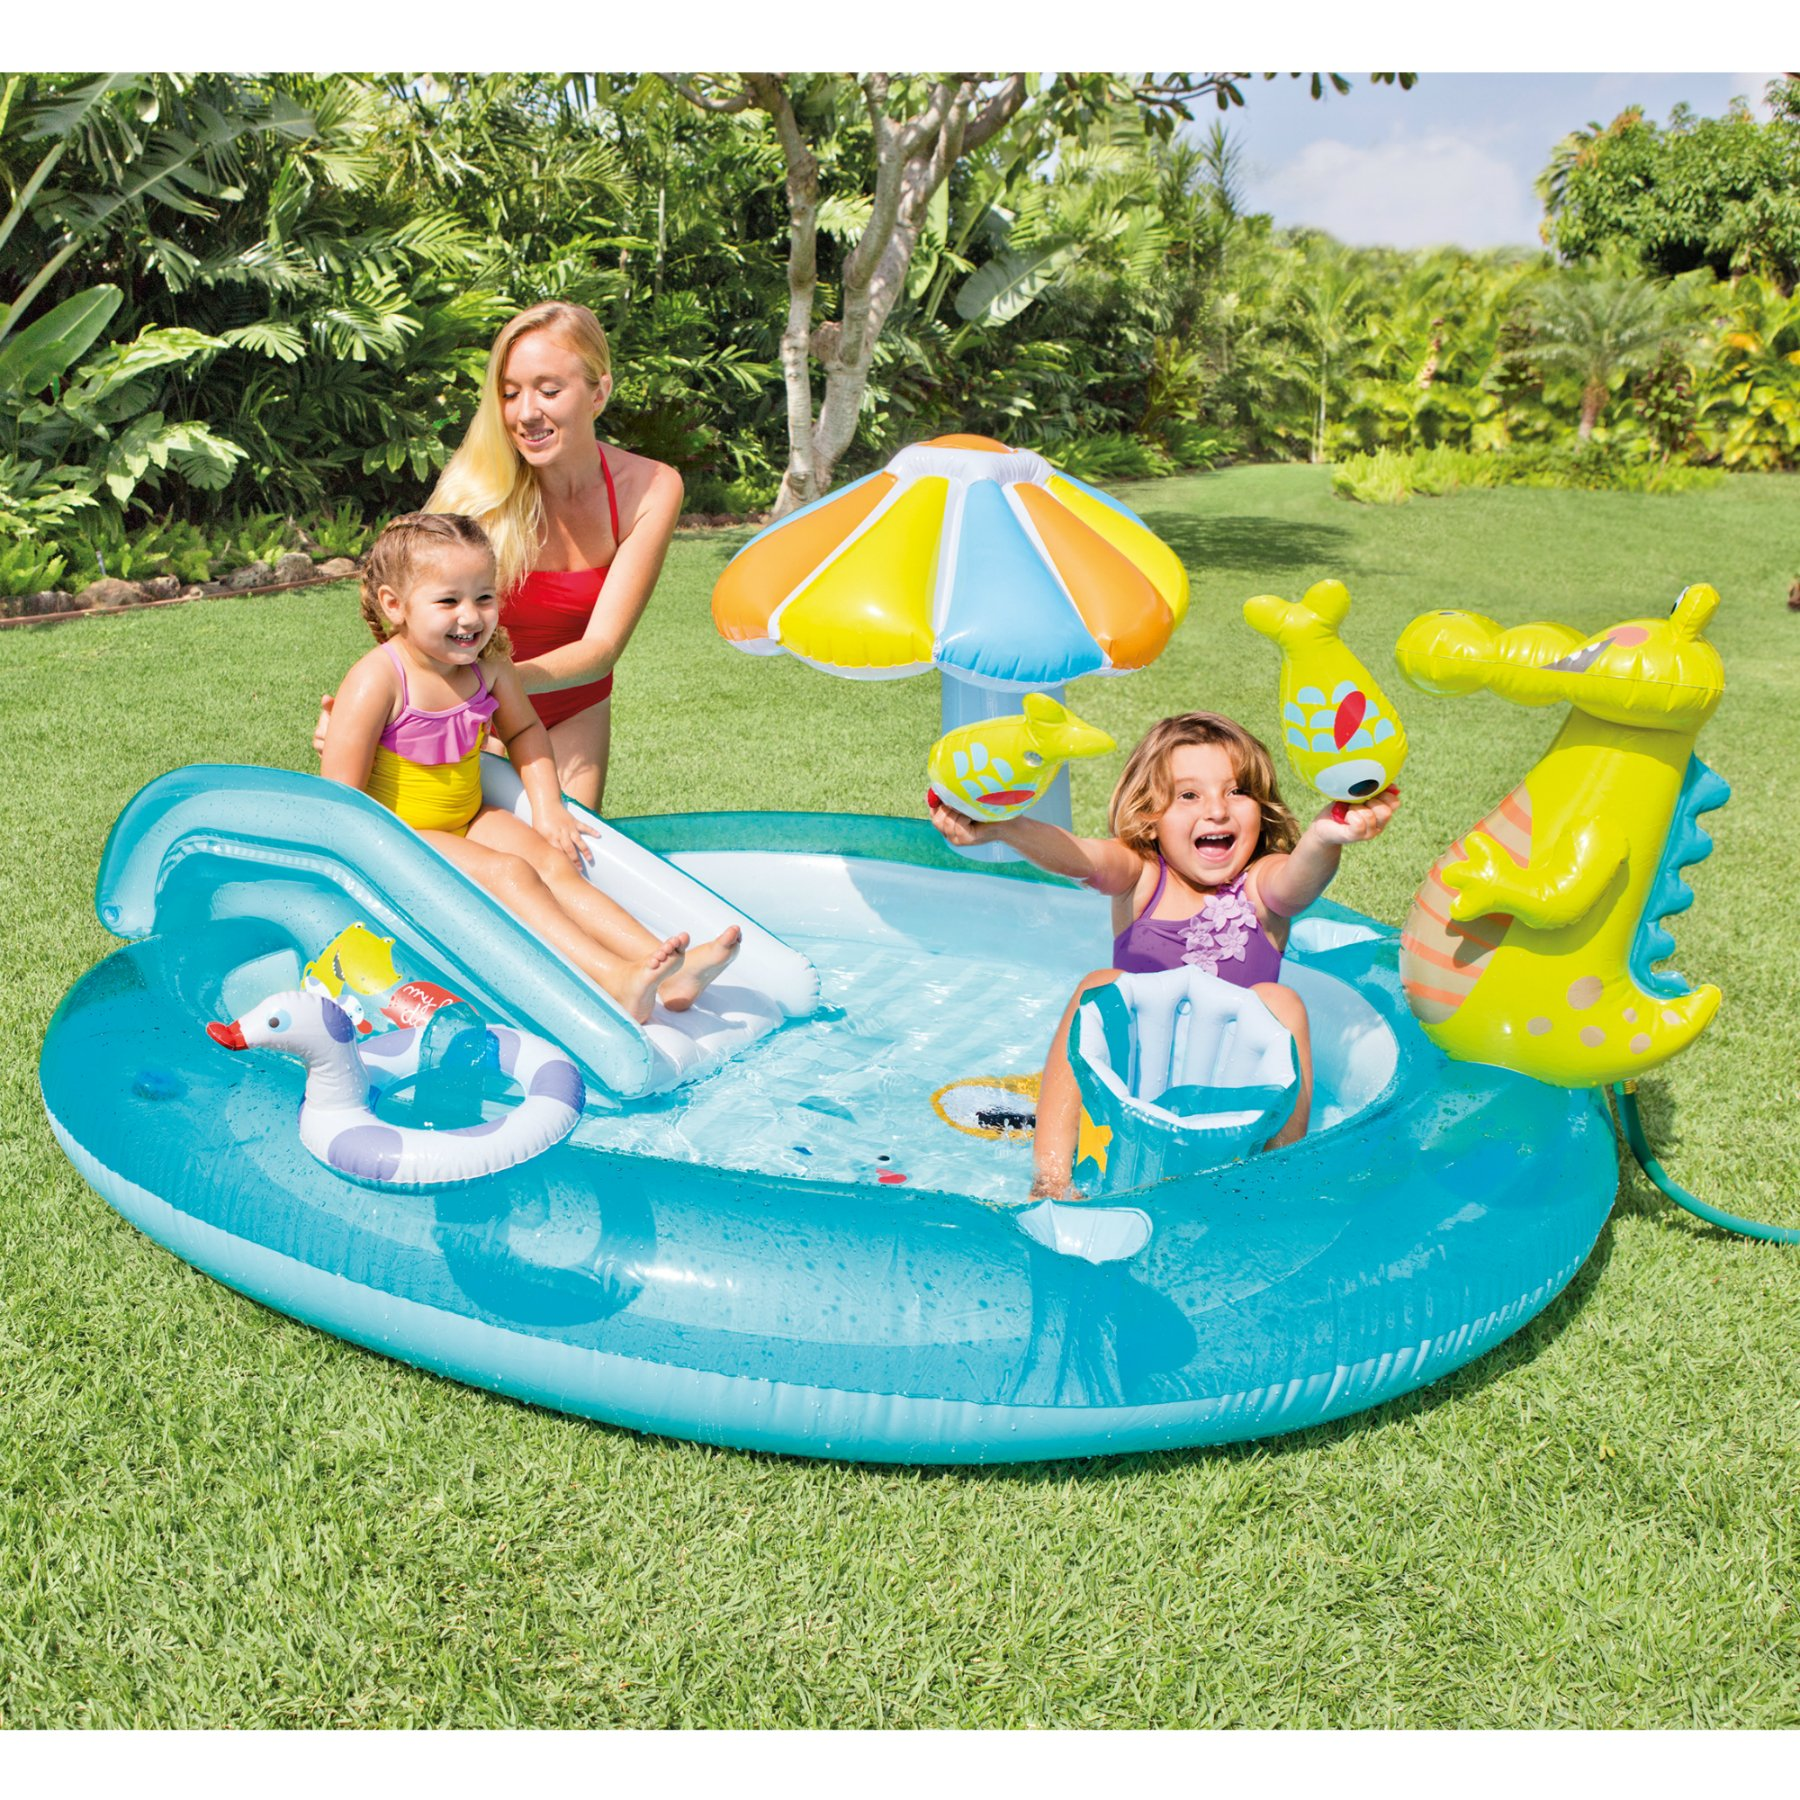 Intex Gator Inflatable Play Center, 80'' X 68'' X 35'', for Ages 2+ by Intex (Image #2)